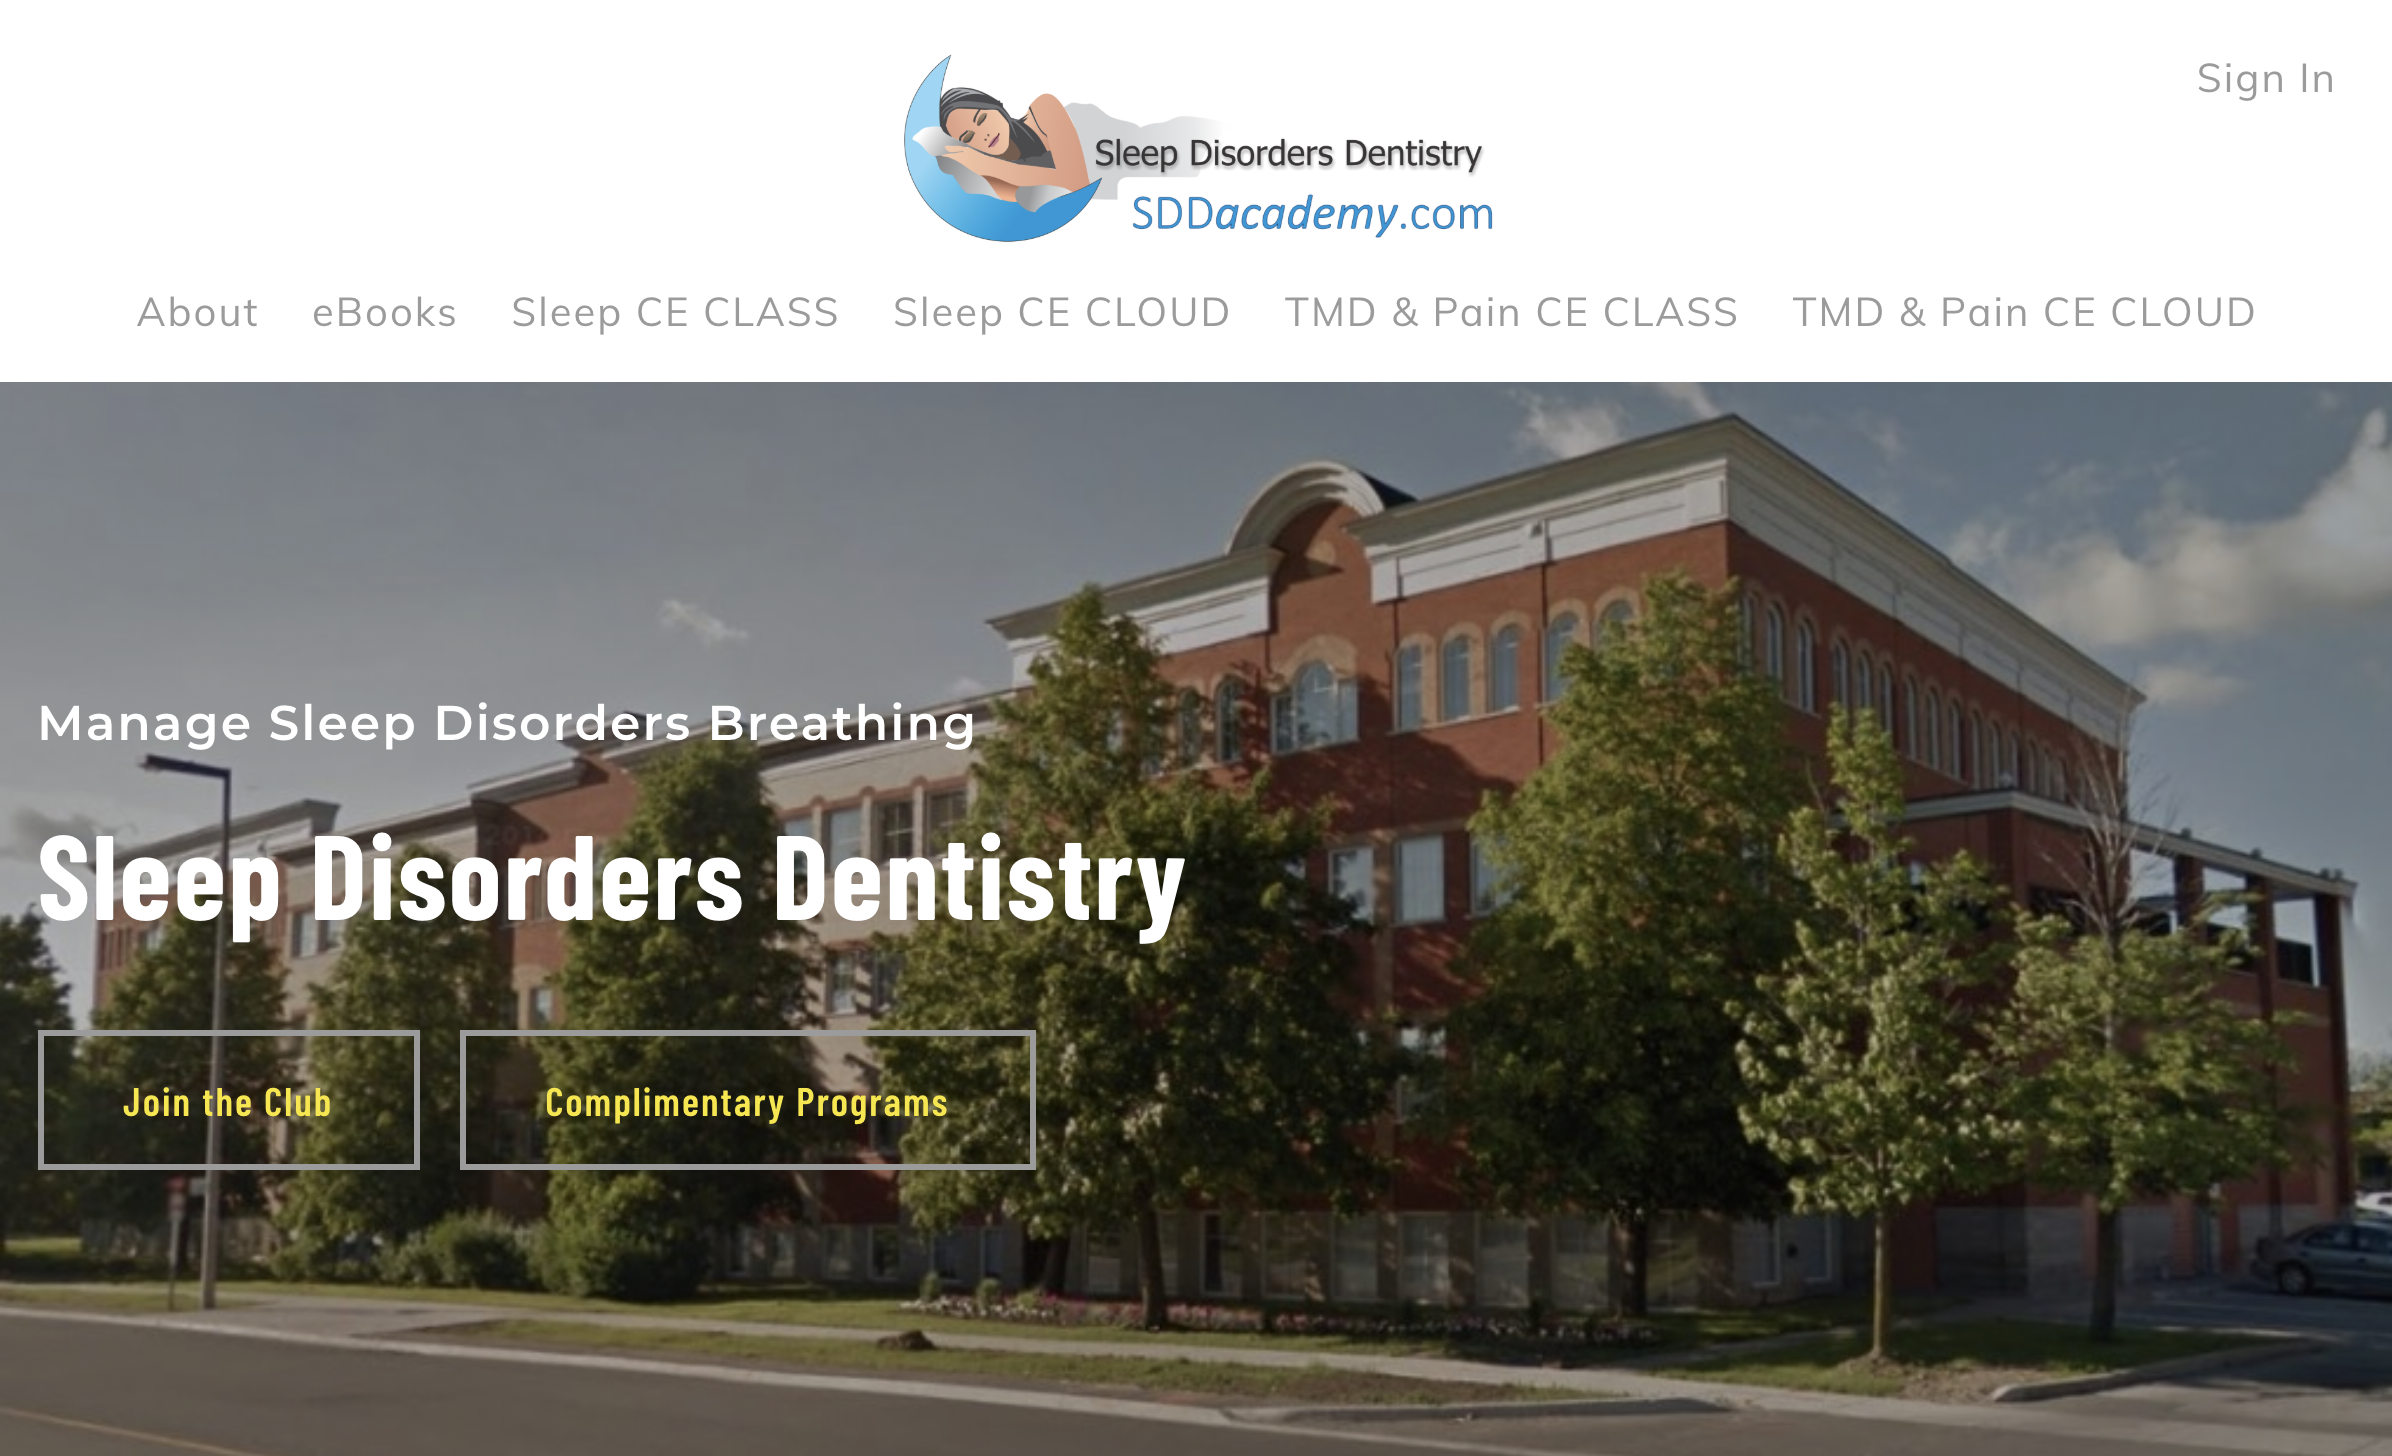 Click to visit SDDacademy.com or view 2019-2020 Directory Below